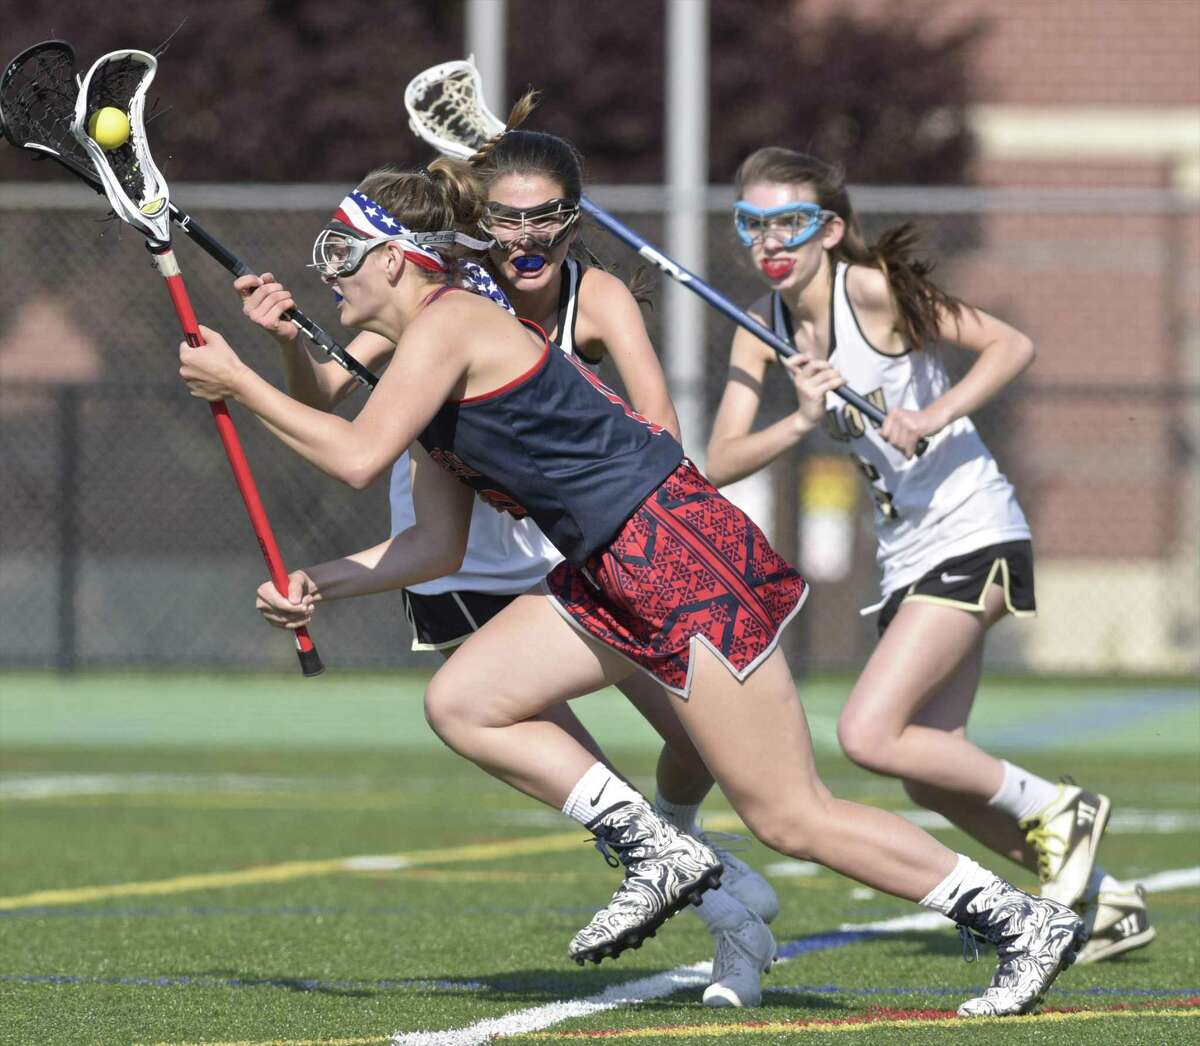 New Fairfield's Alexa Meres (19) goes by Joel Barlow defenders Julia Hartmann (14) and Erin Carroll (6) in the girls SWC lacrosse championship game between New Fairfield and Joel Barlow high schools, Friday afternoon, May 25, 2018, at New Milford High School, New Milford, Conn. New Fairfield defeated Joel Barlow 20-14 to win the SWC girls lacrosse championship.